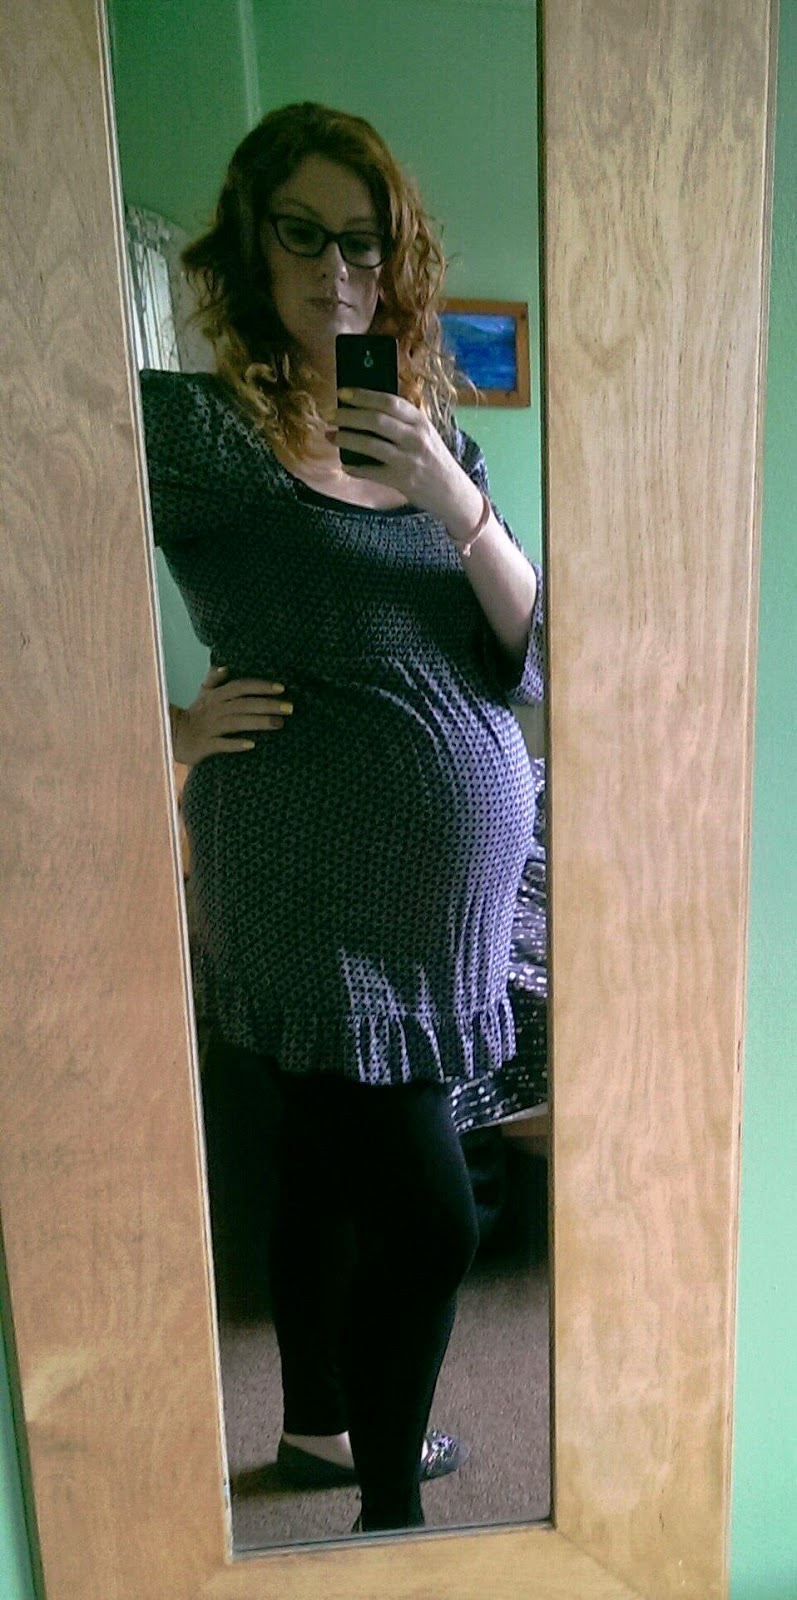 ME now 31 weeks pregnant